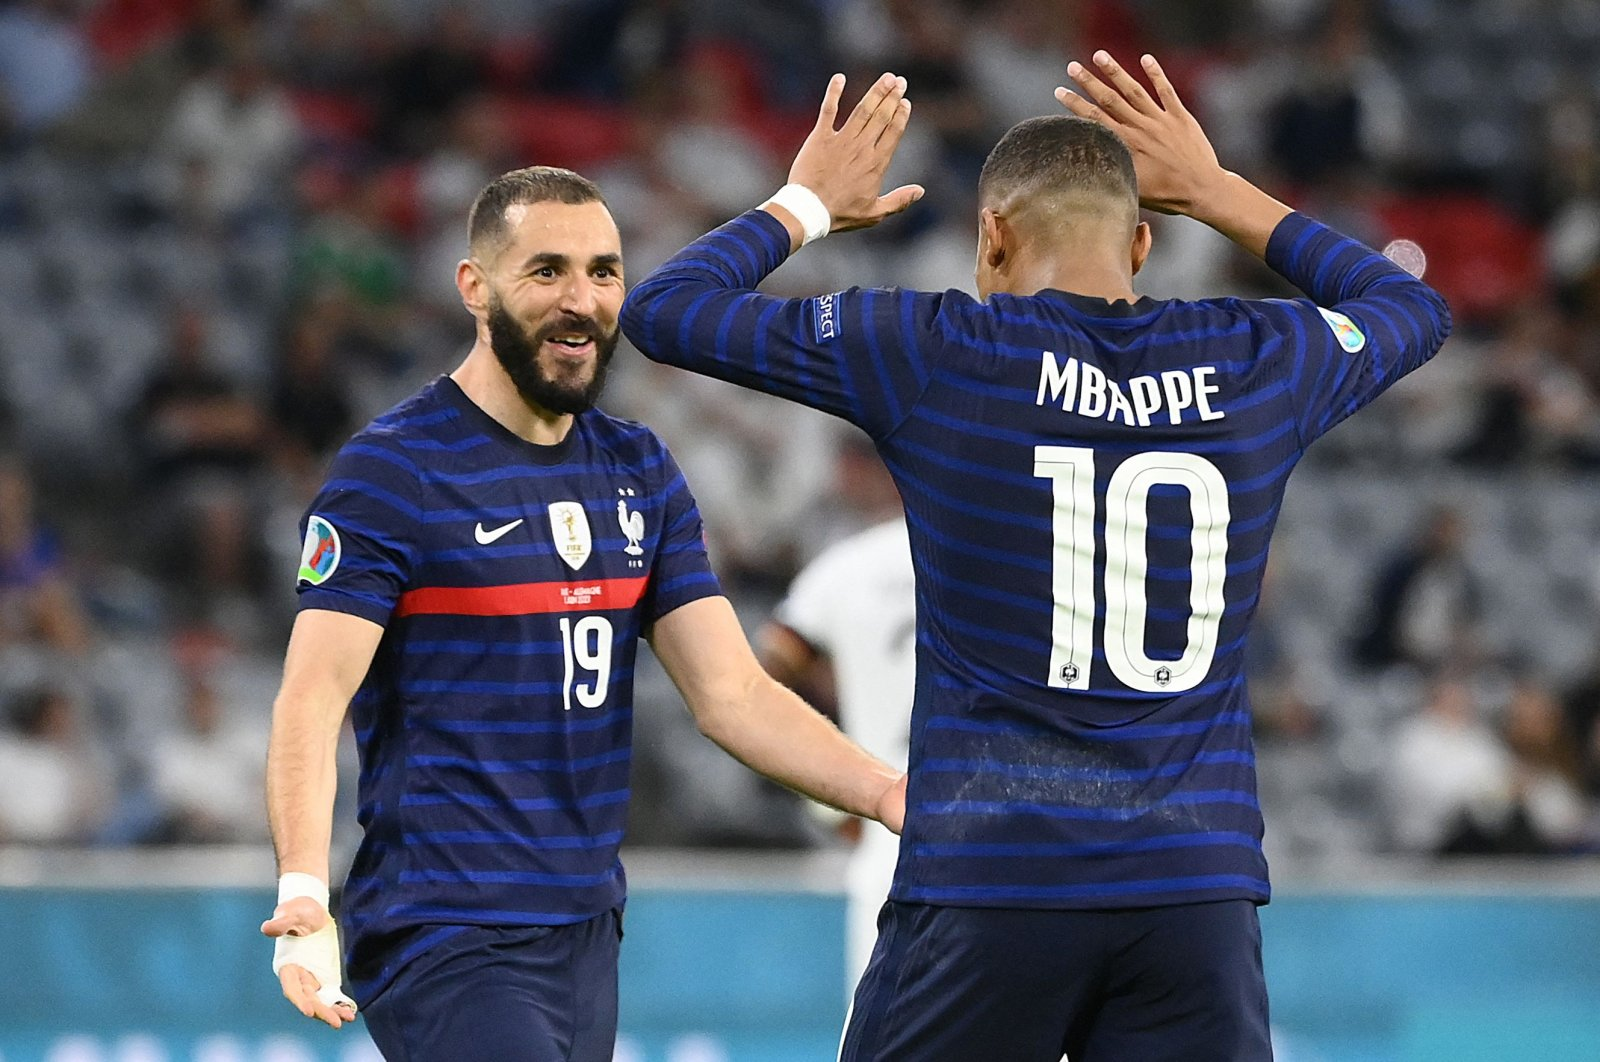 France's forward Karim Benzema (L) celebrates with France's forward Kylian Mbappe after scoring, before it was later revoked due to offside, during the UEFA EURO 2020 Group F football match between France and Germany at the Allianz Arena in Munich on June 15, 2021. (AFP Photo)